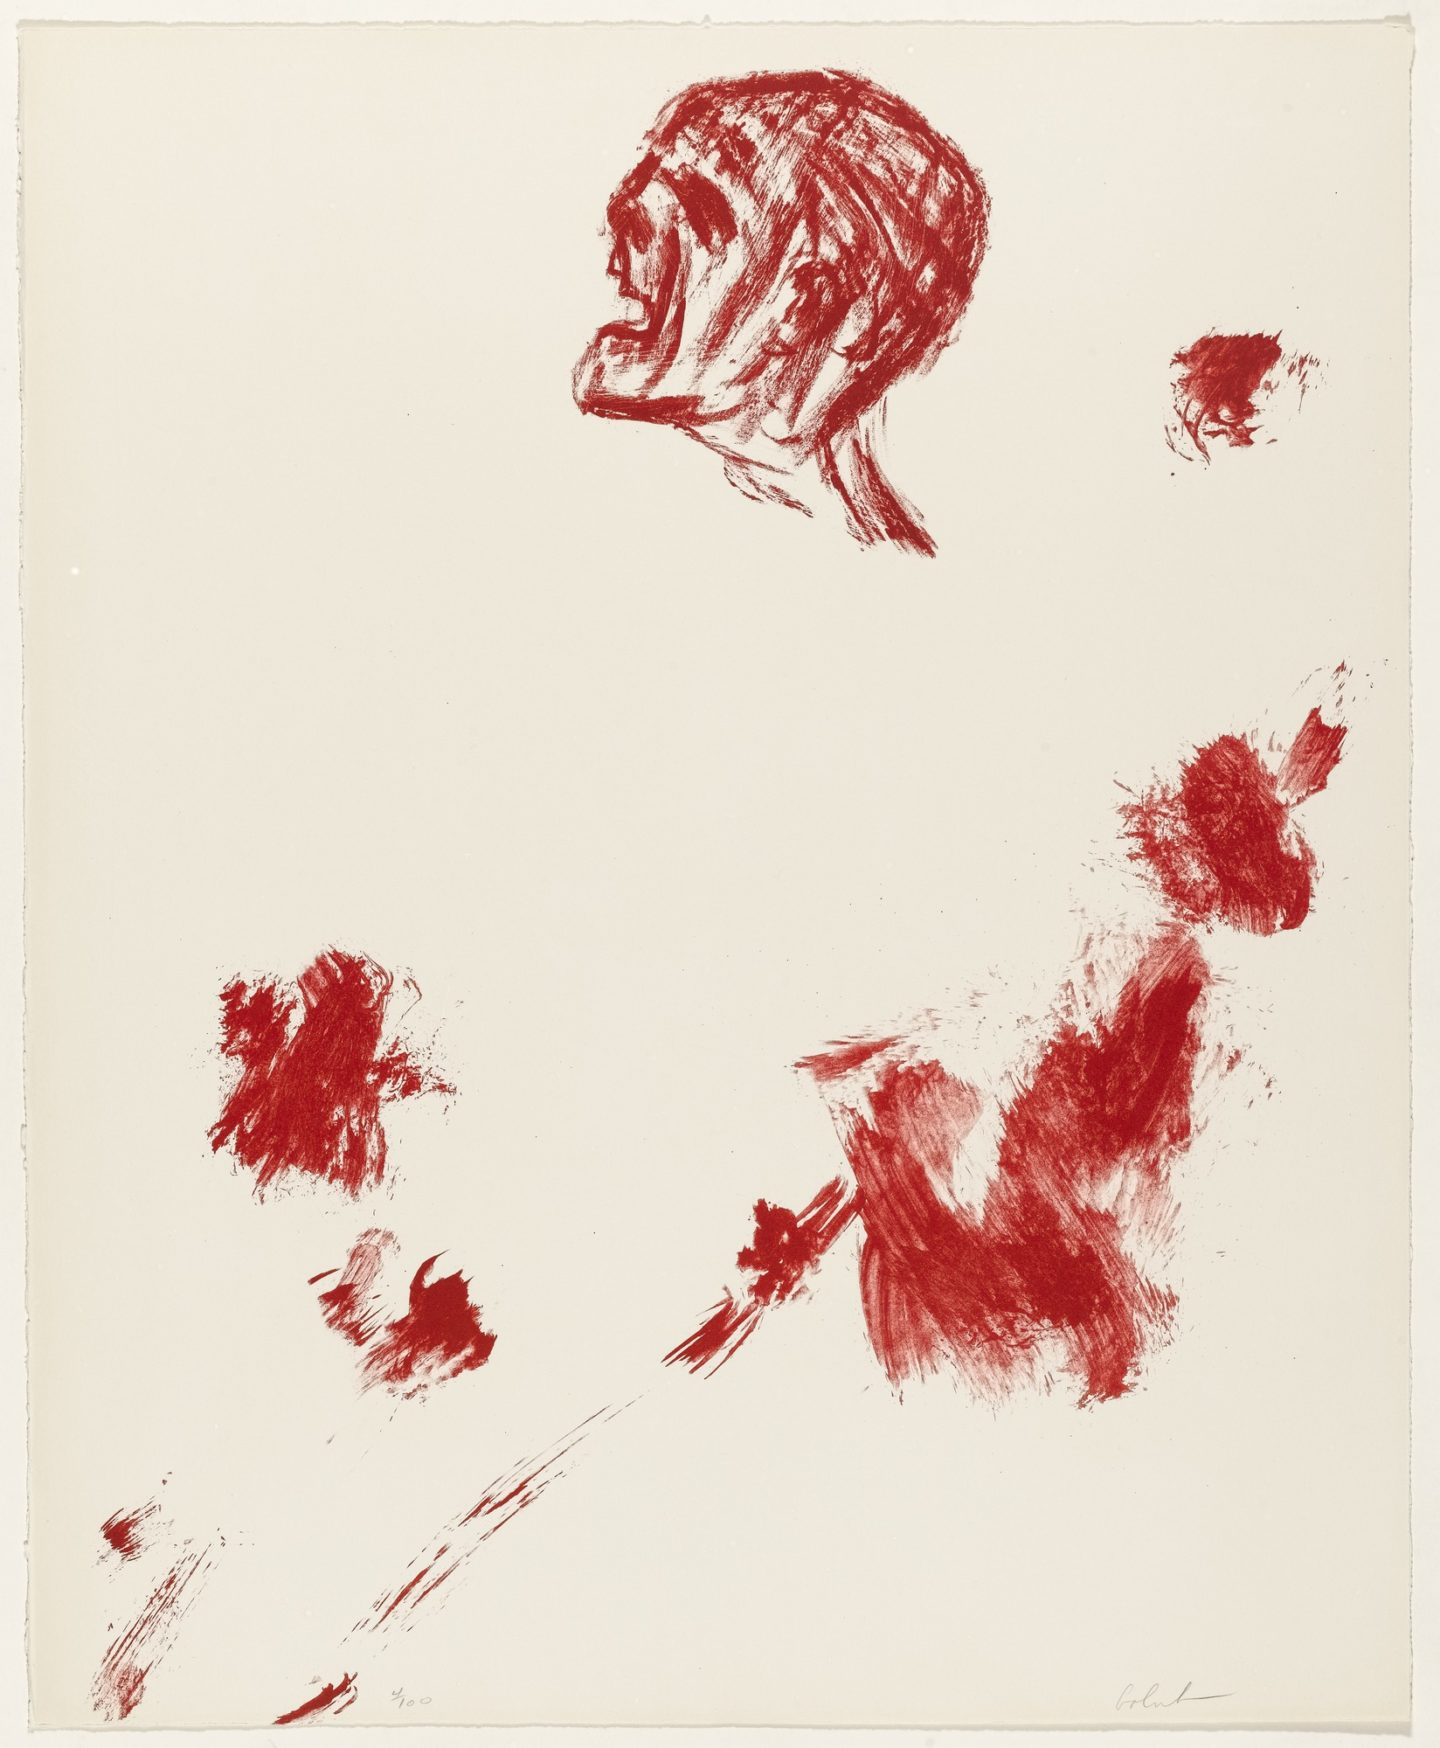 Leon Golub, Killed Youth, 1967